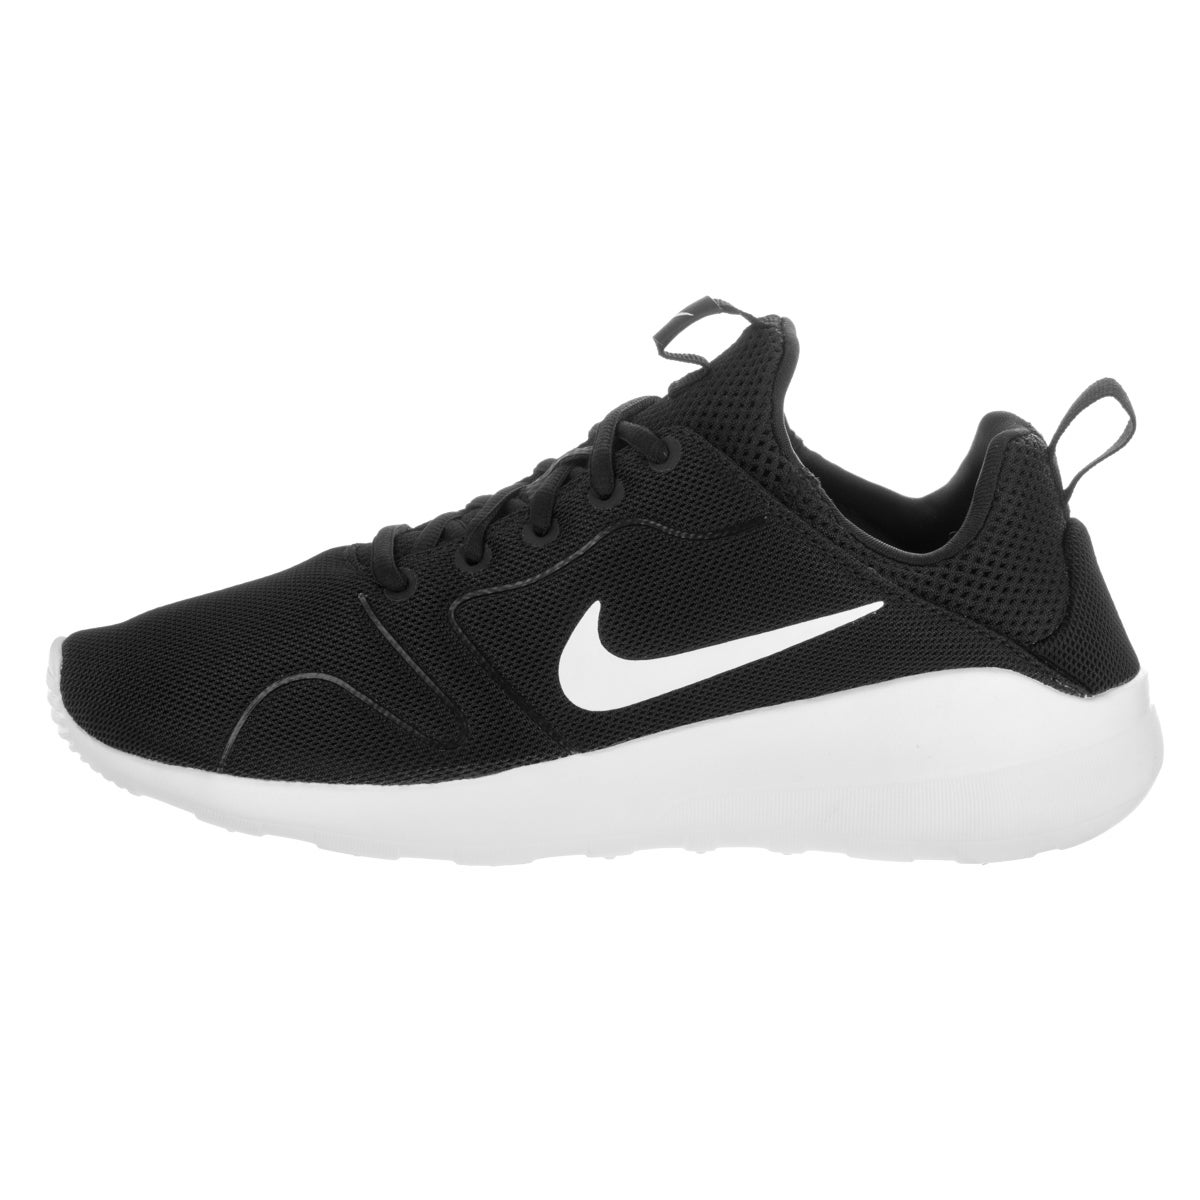 size 40 9b740 f7732 ... best price shop nike mens kaishi 2.0 black mesh running shoes free  shipping today overstock 13476373